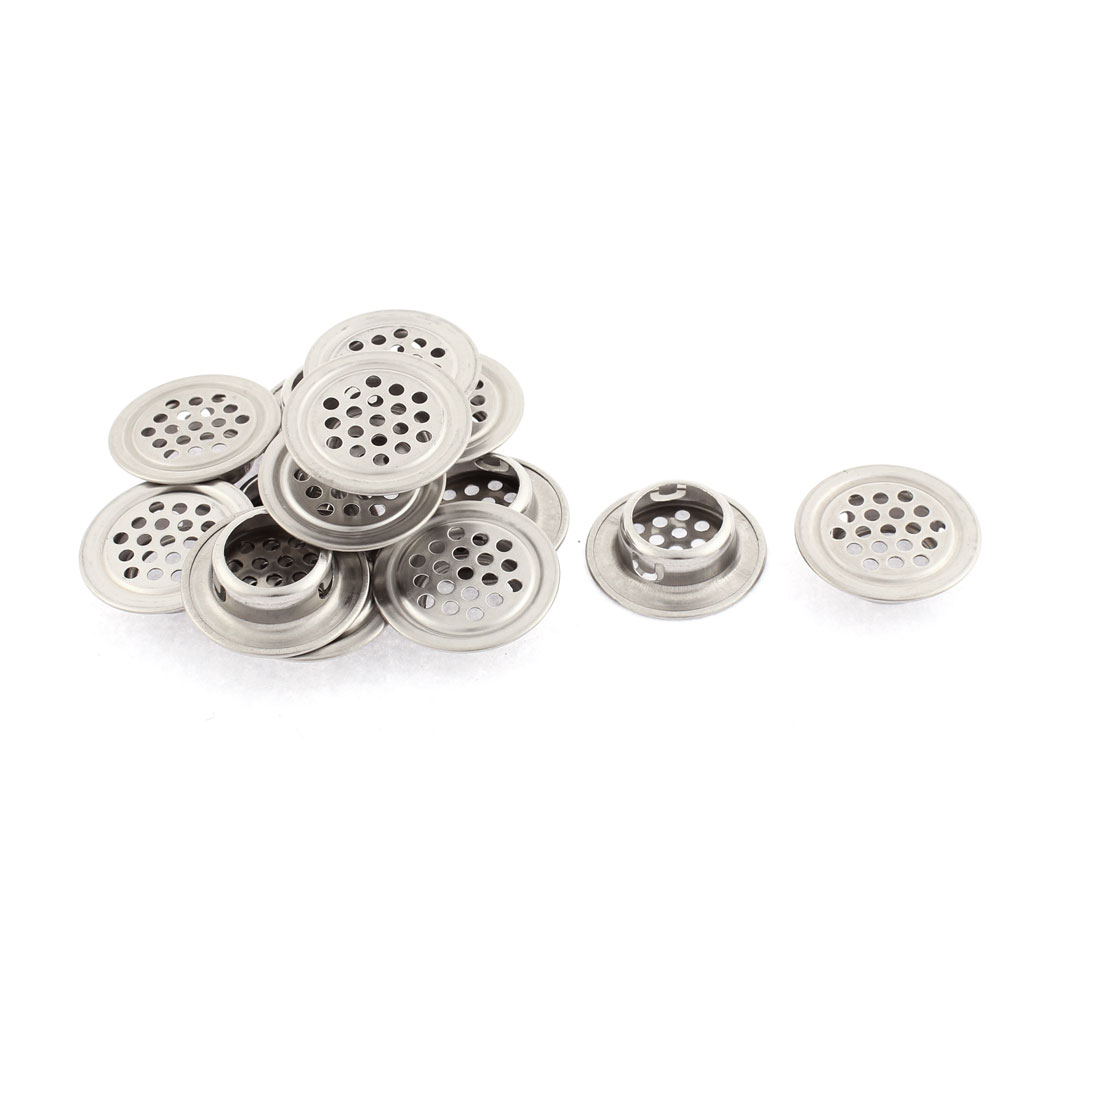 Metal Round Design Perforated Mesh Air Vents Louvers Silver Tone 30mm Dia 14pcs